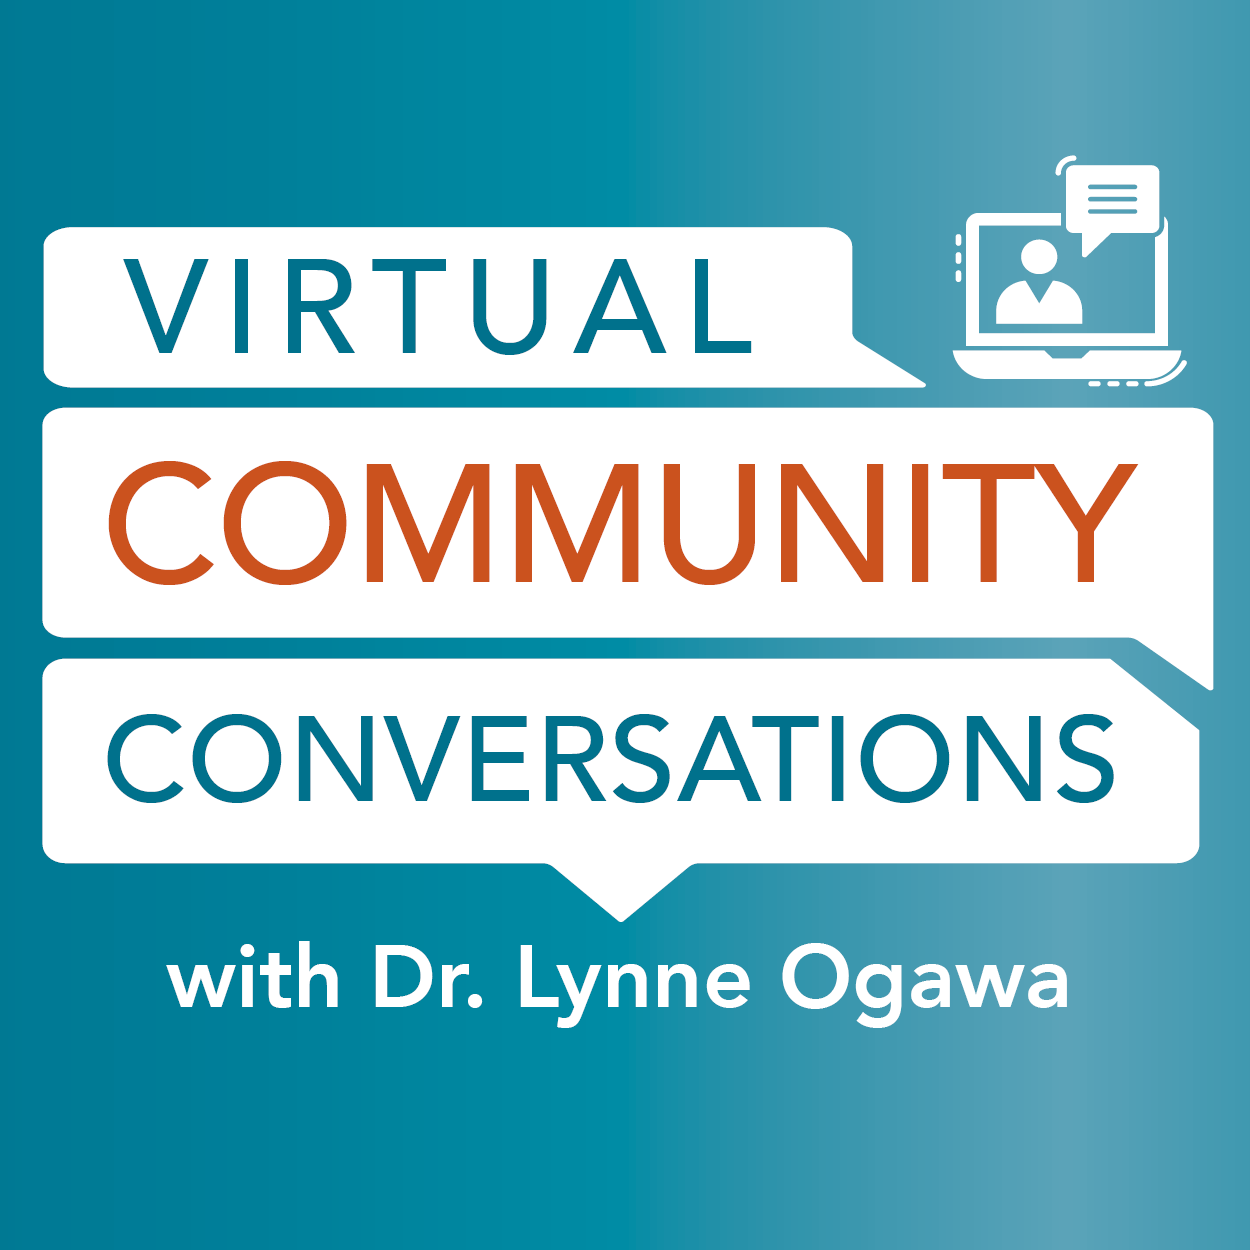 Virtual community conversations with Dr. Lynne Ogawa